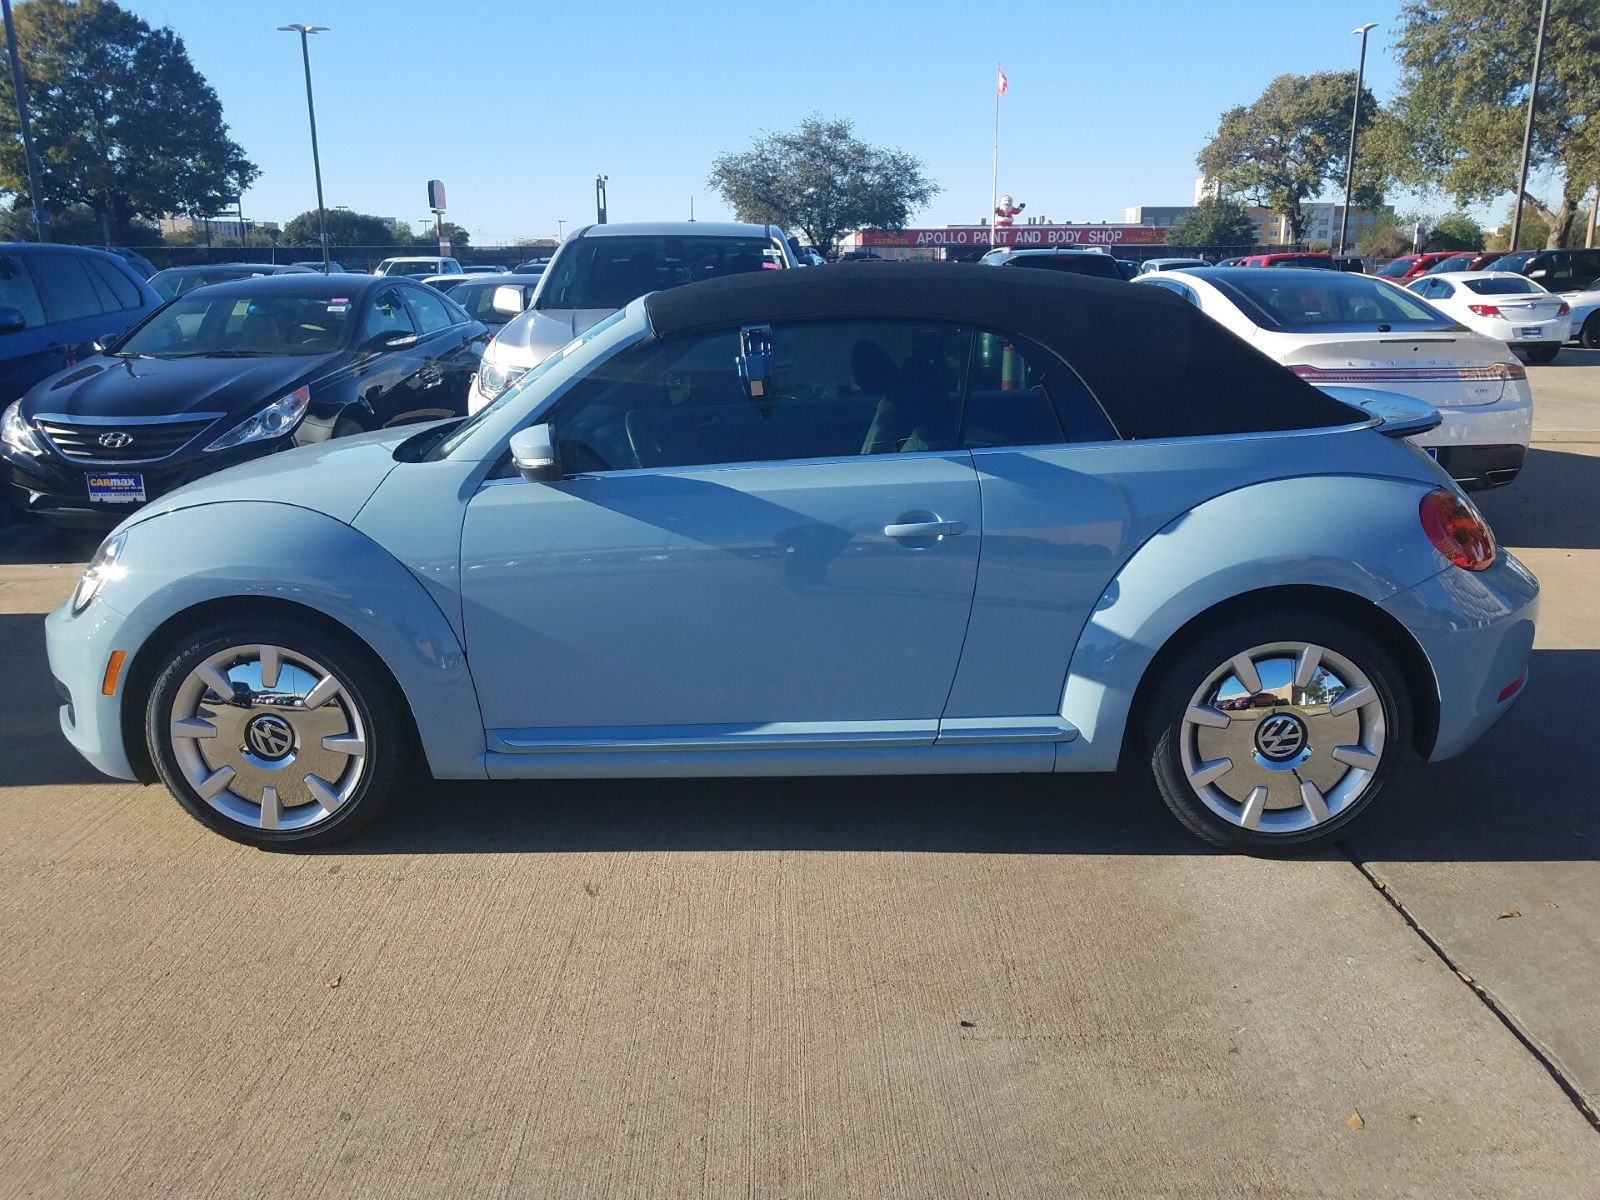 sale beetle car cabriolet in for convertible tdi volkswagen portsmouth hampshire used infinity